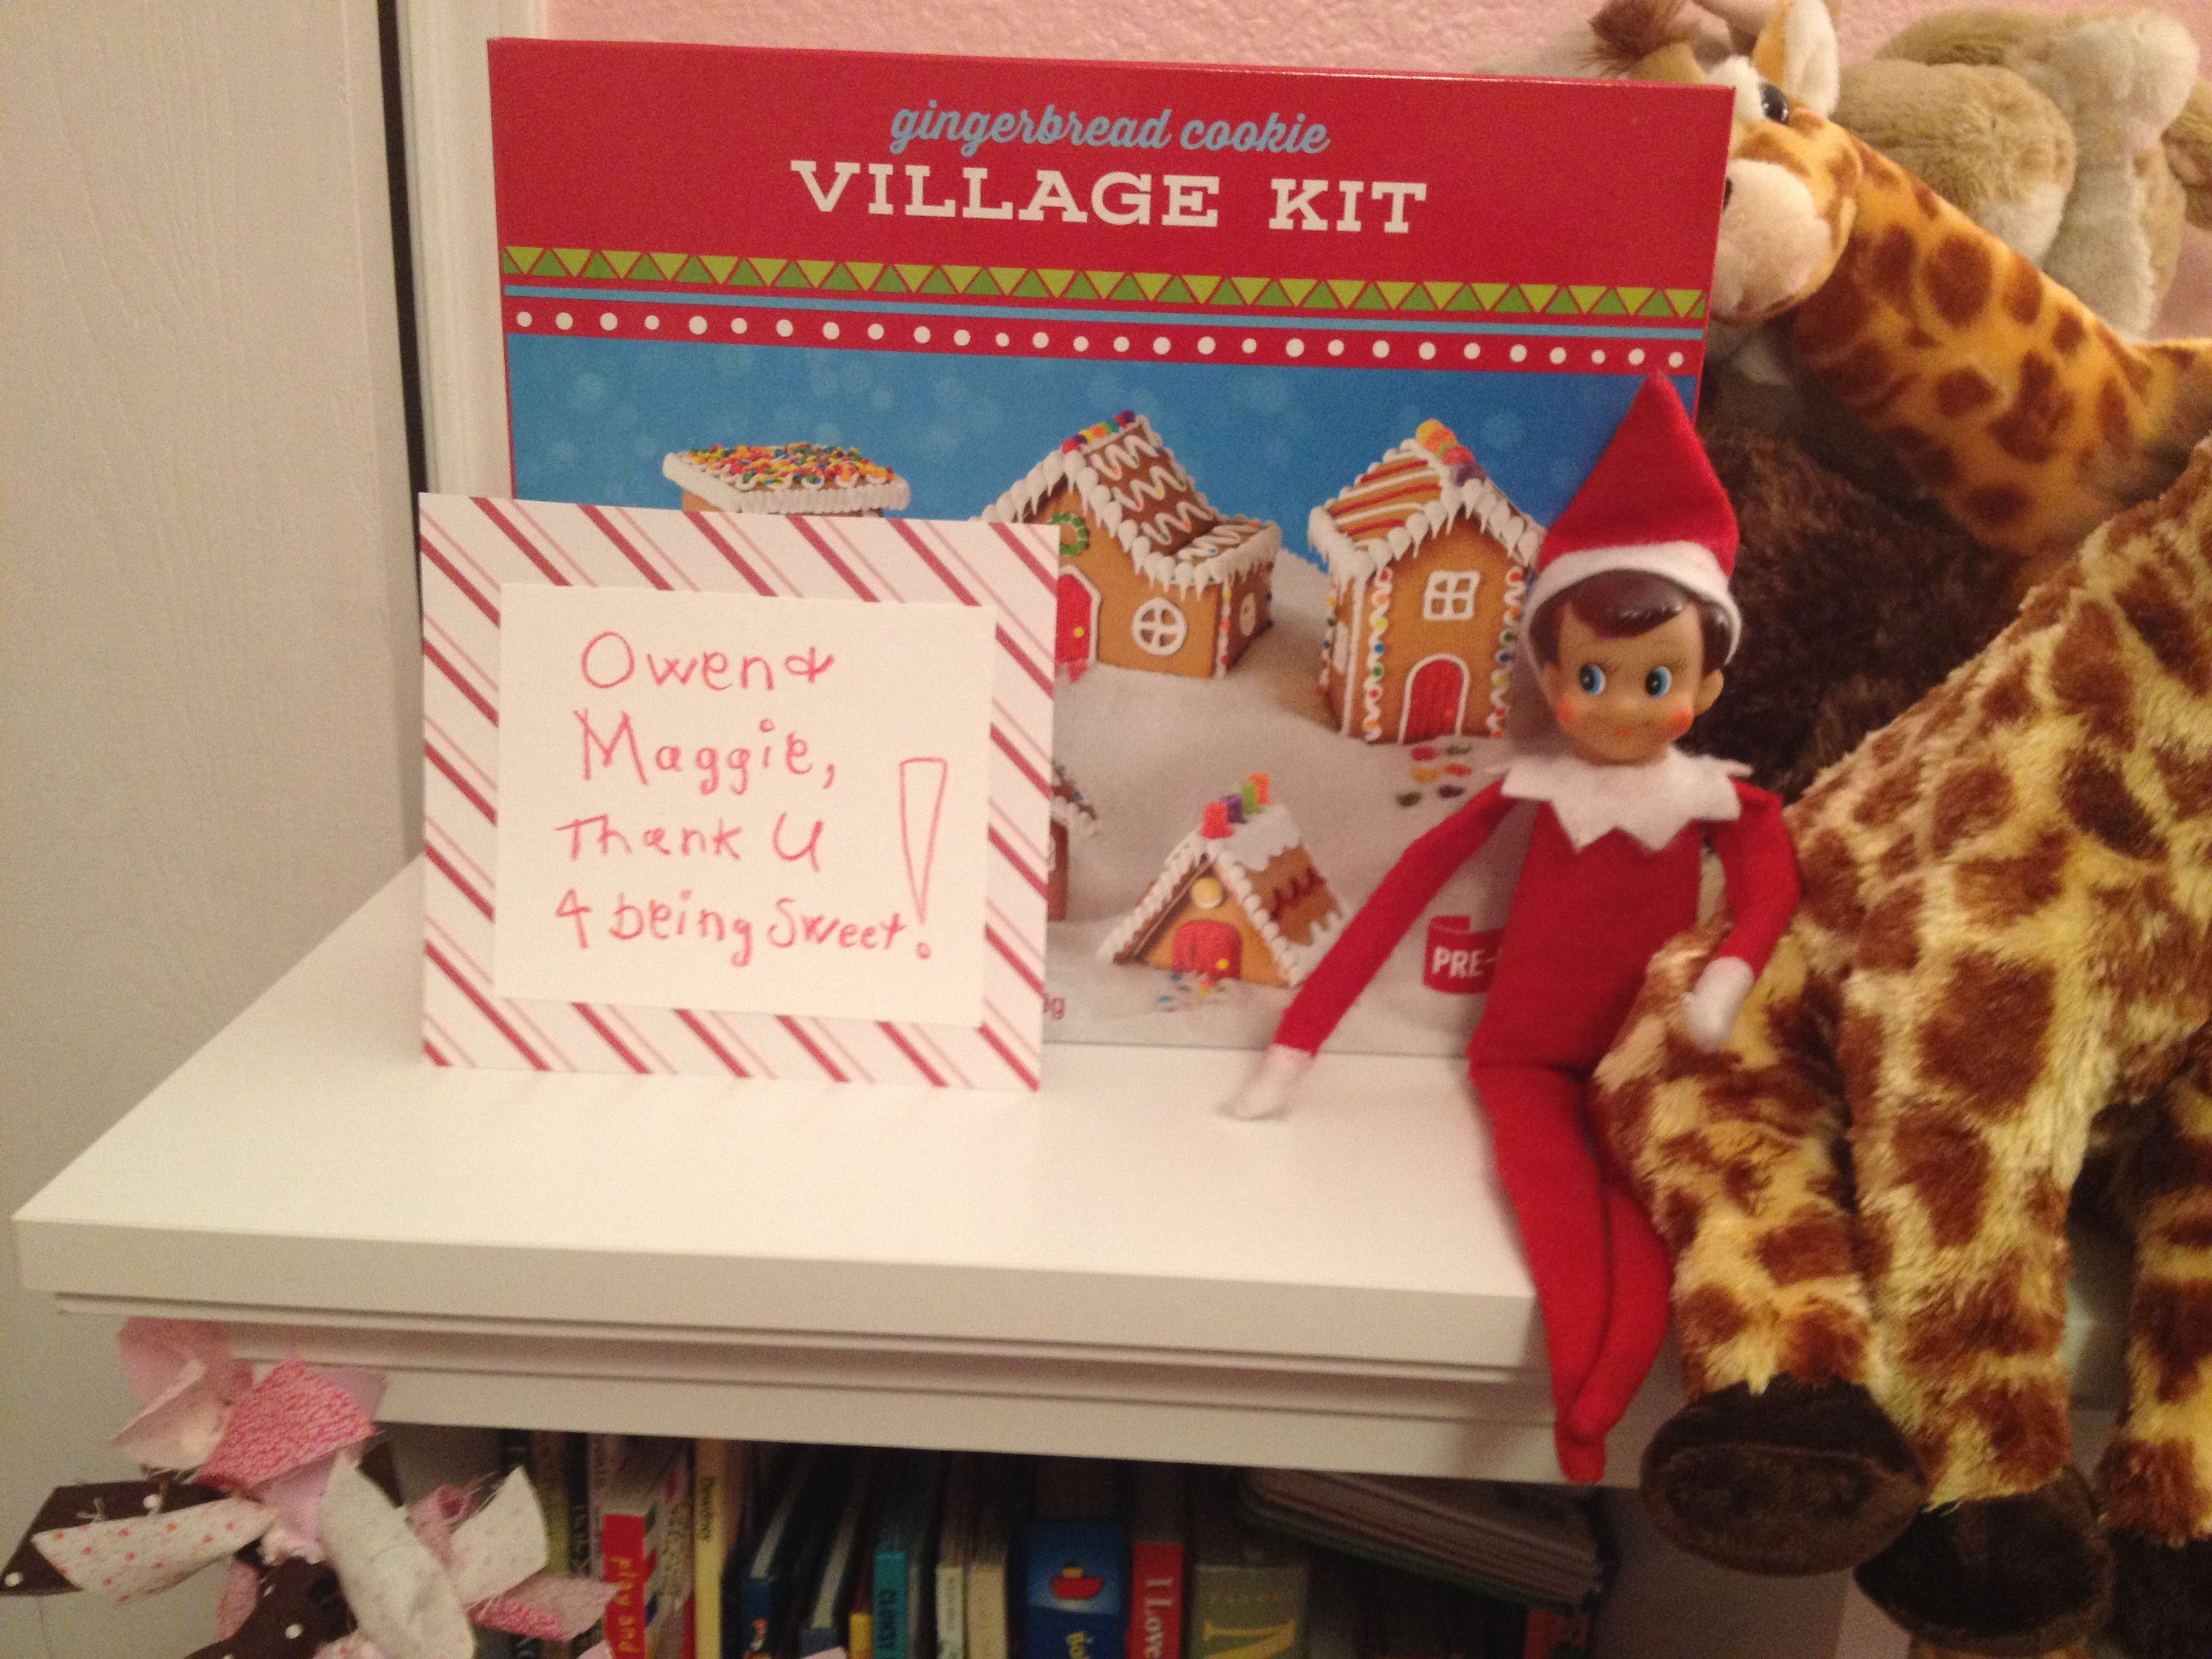 Elf on the Shelf brings the kids a gingerbread house kit for being good.